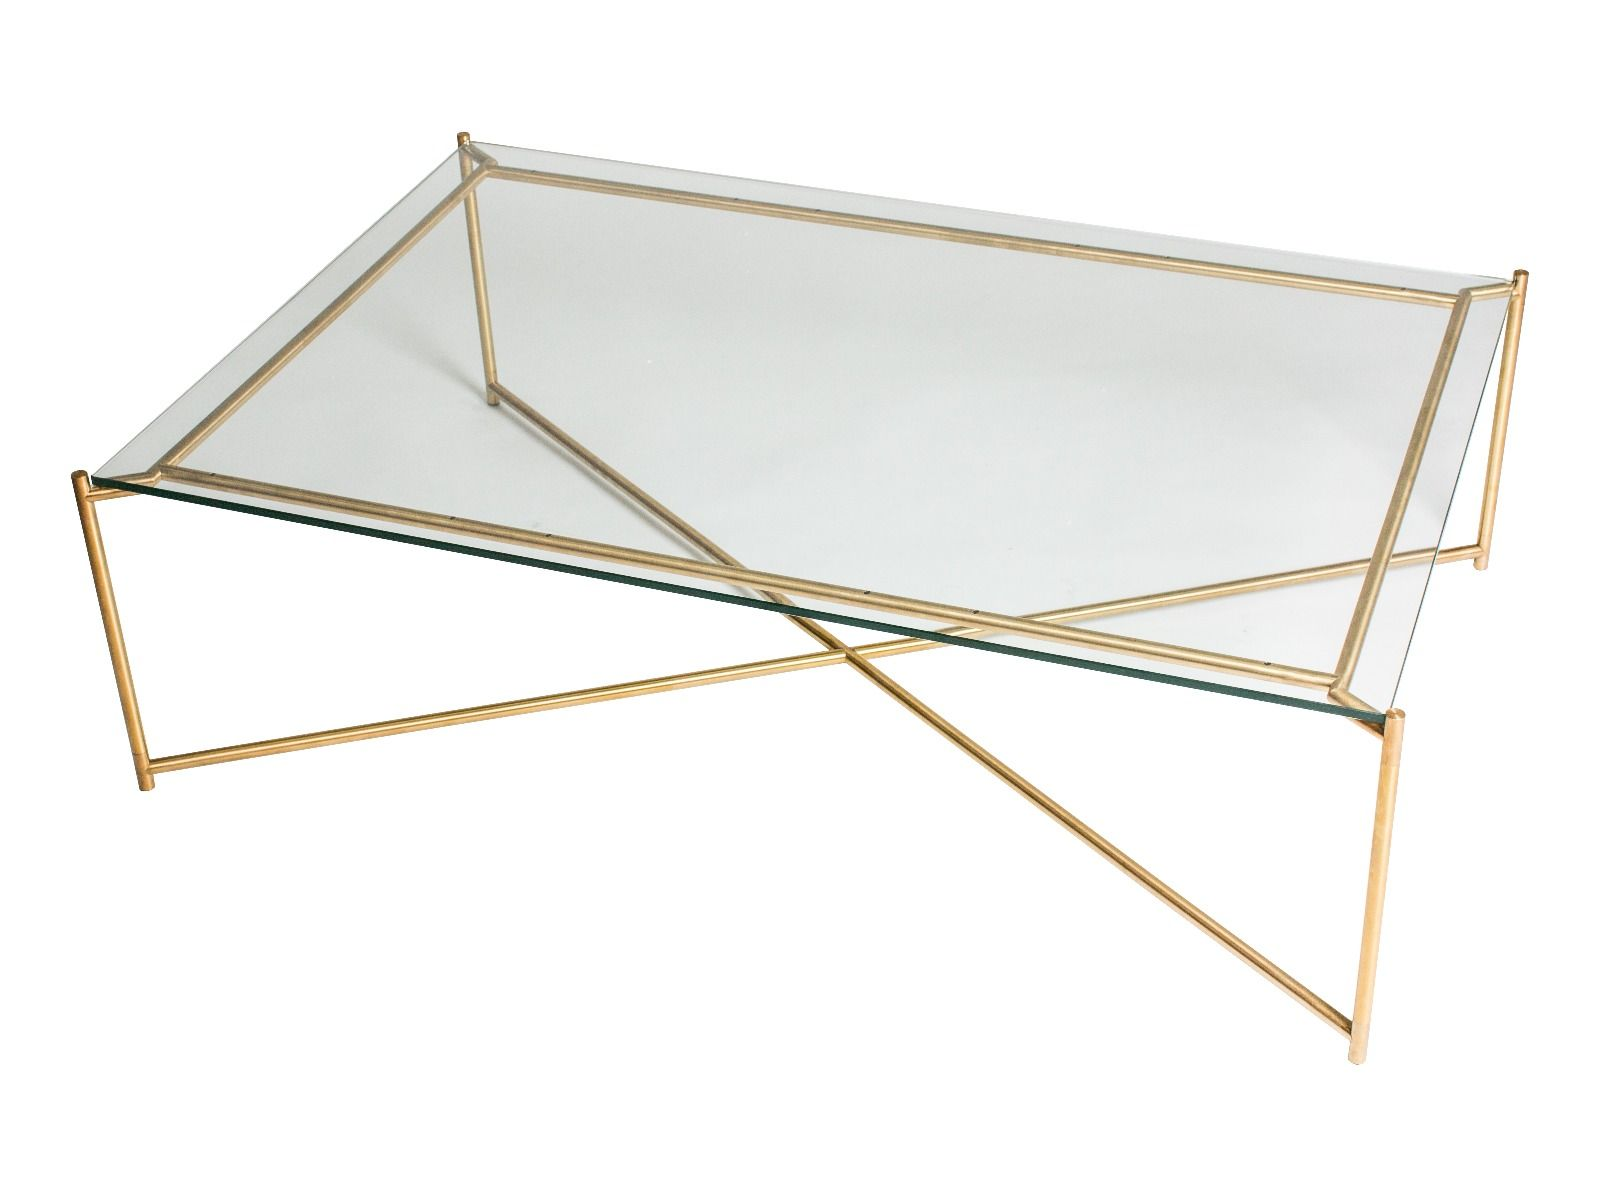 Rectangle Coffee Table CLEAR GLASS With BRASS FRAME By Gillmore